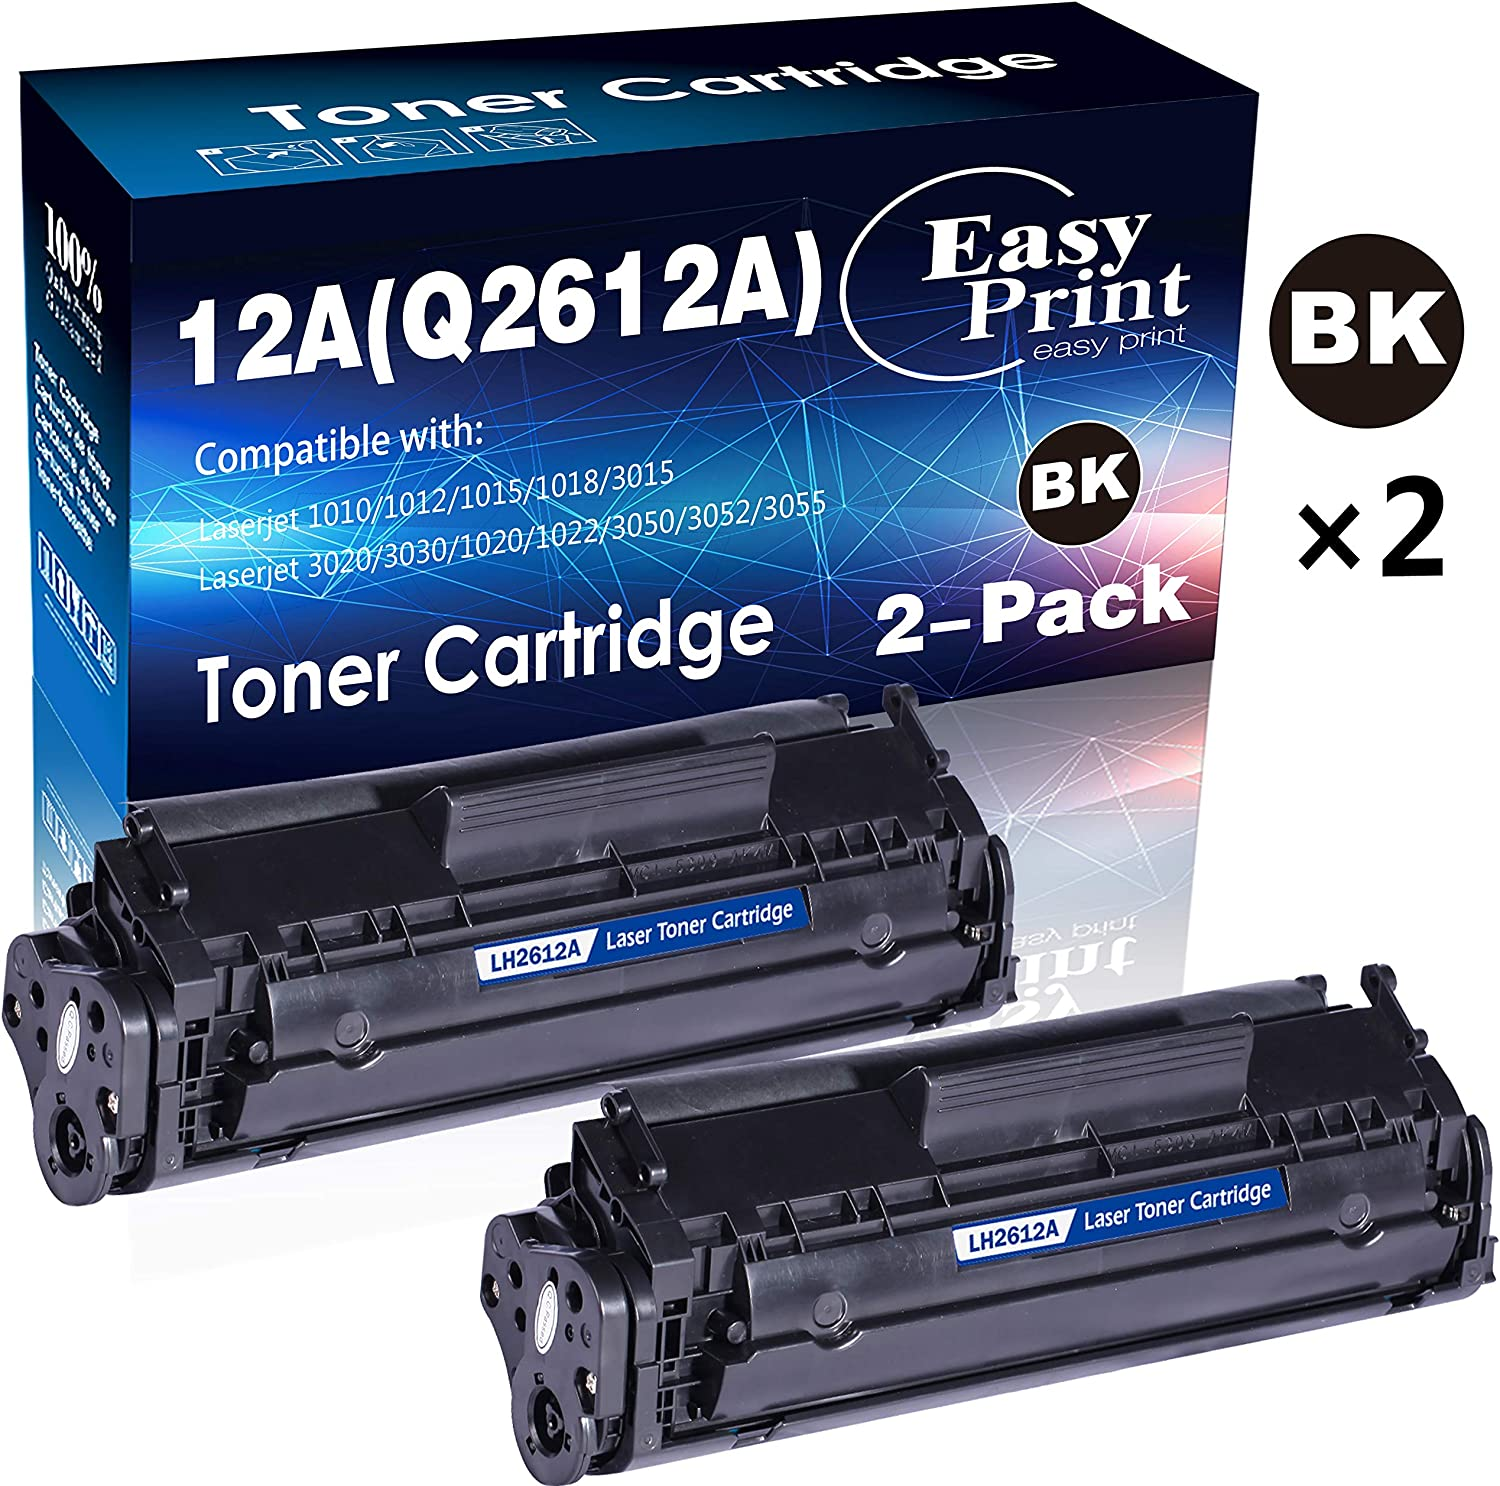 (2-Pack, Black) Compatible 12A Q2612A Toner Cartridge 2612A Used for HP Laserjet Laserjet Pro 1010 1012 1018 1020 1022 1022n 3015 3030 3050 3052 3055 M1319F Printer, by EasyPrint